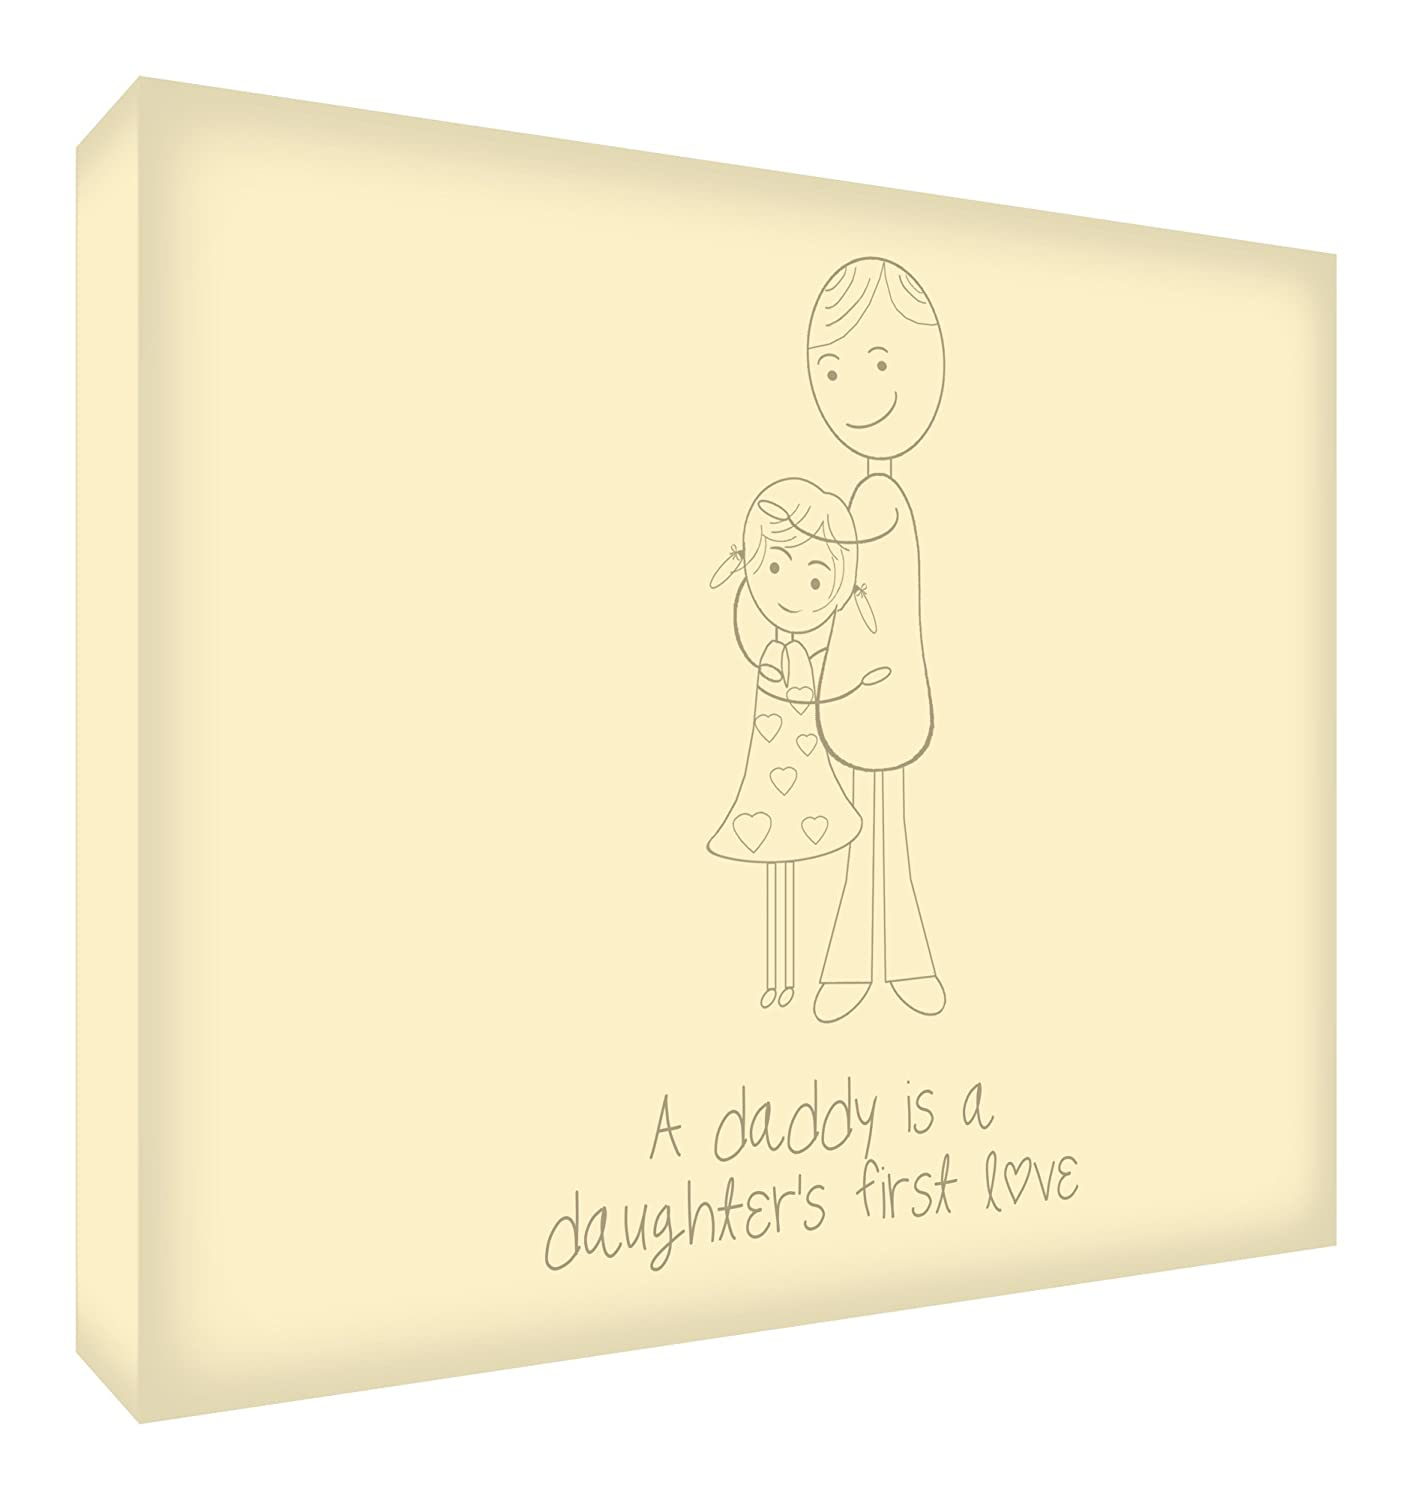 Feel Good Art Diamond-Polished Token in Modern Illustrative Design 10.5 x 14.8 x 2 cm, Small, Black, A Daddy is a Daughters First Love